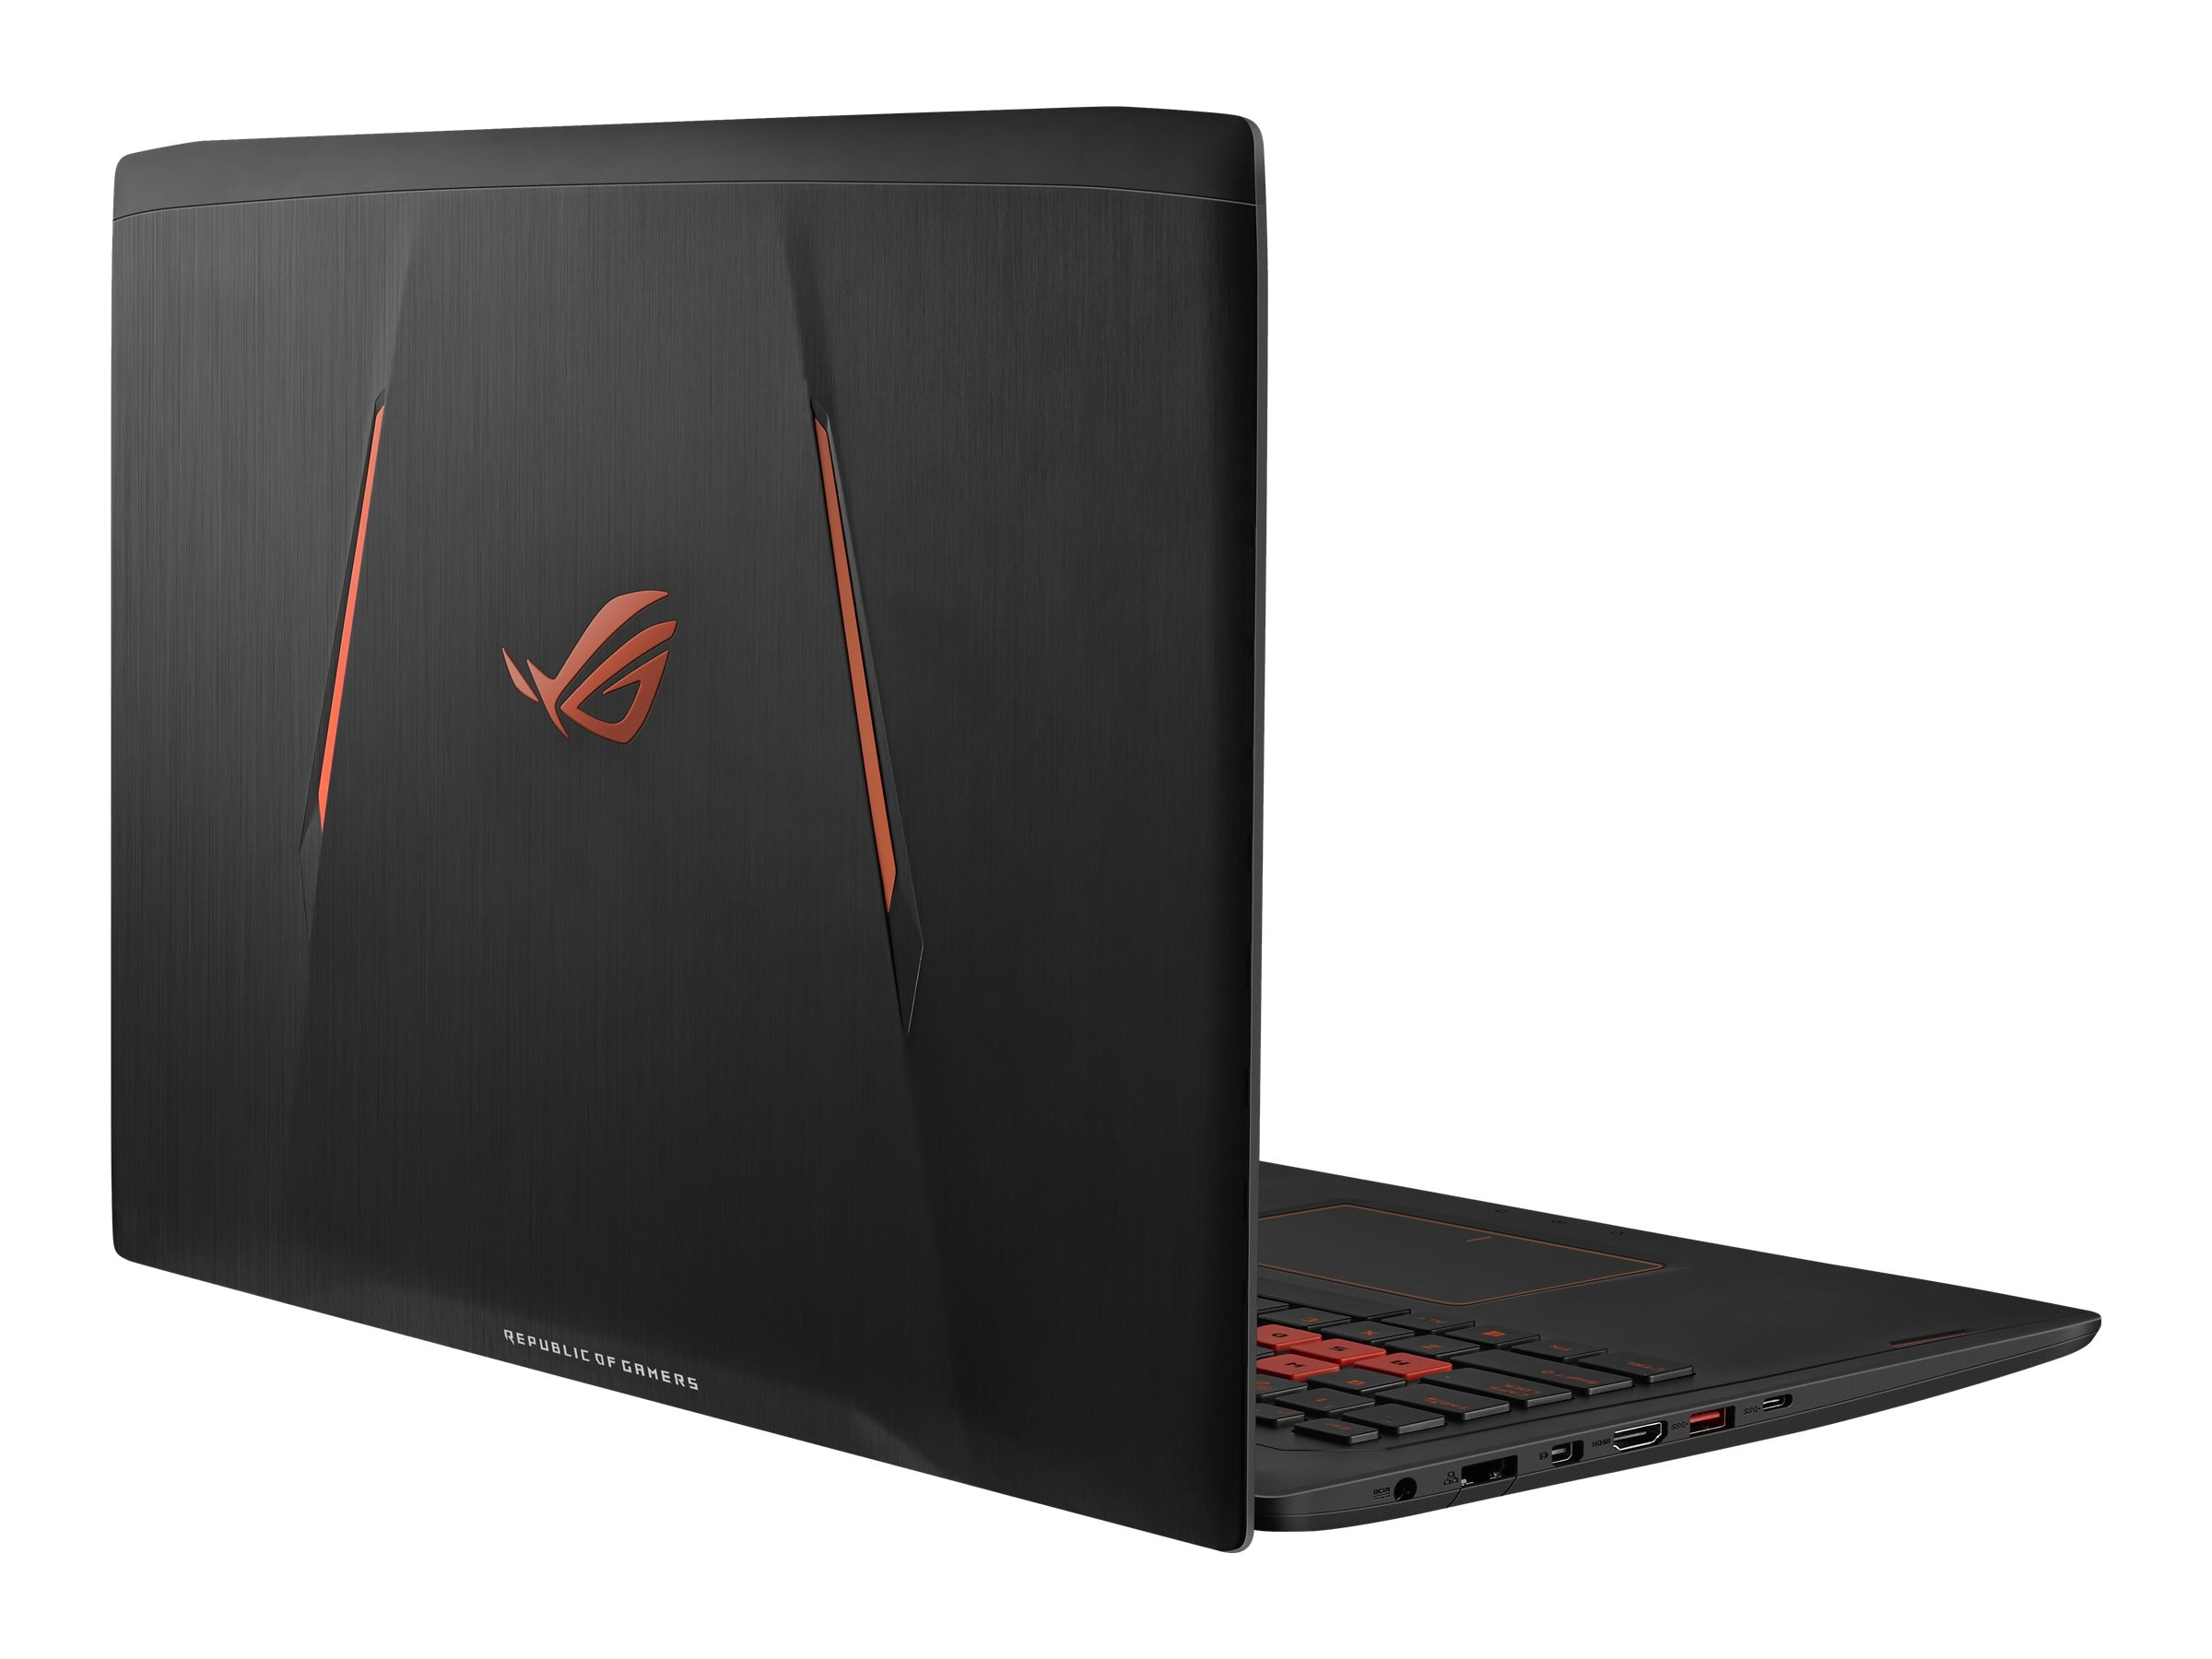 Asus ROG Strix GL502VT-DS74 Core i7-6700HQ 2.6GHz 16GB 1TB+128GB SSD 15.6 W10, GL502VT-DS74